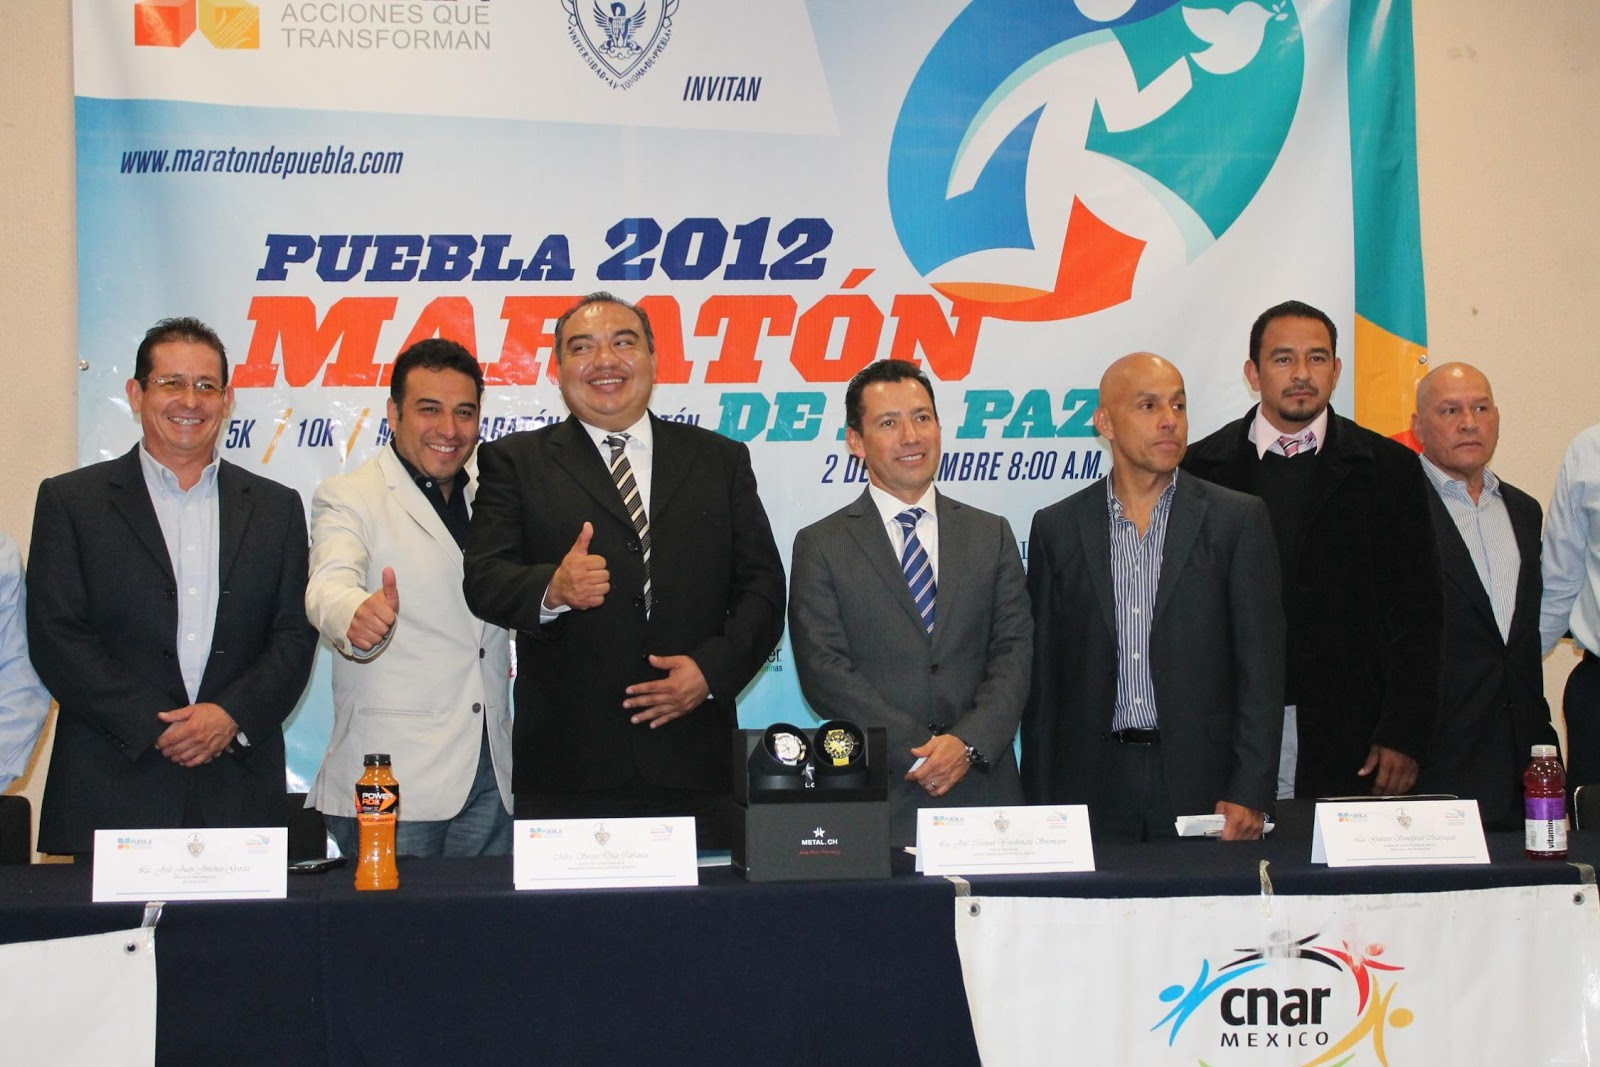  En diciembre ser el Maratn Internacional La Paz Puebla 2012 maraton internacional la paz puebla 2012 centro nacional de desarrollo de Talentos deportivos y alto rendimiento 